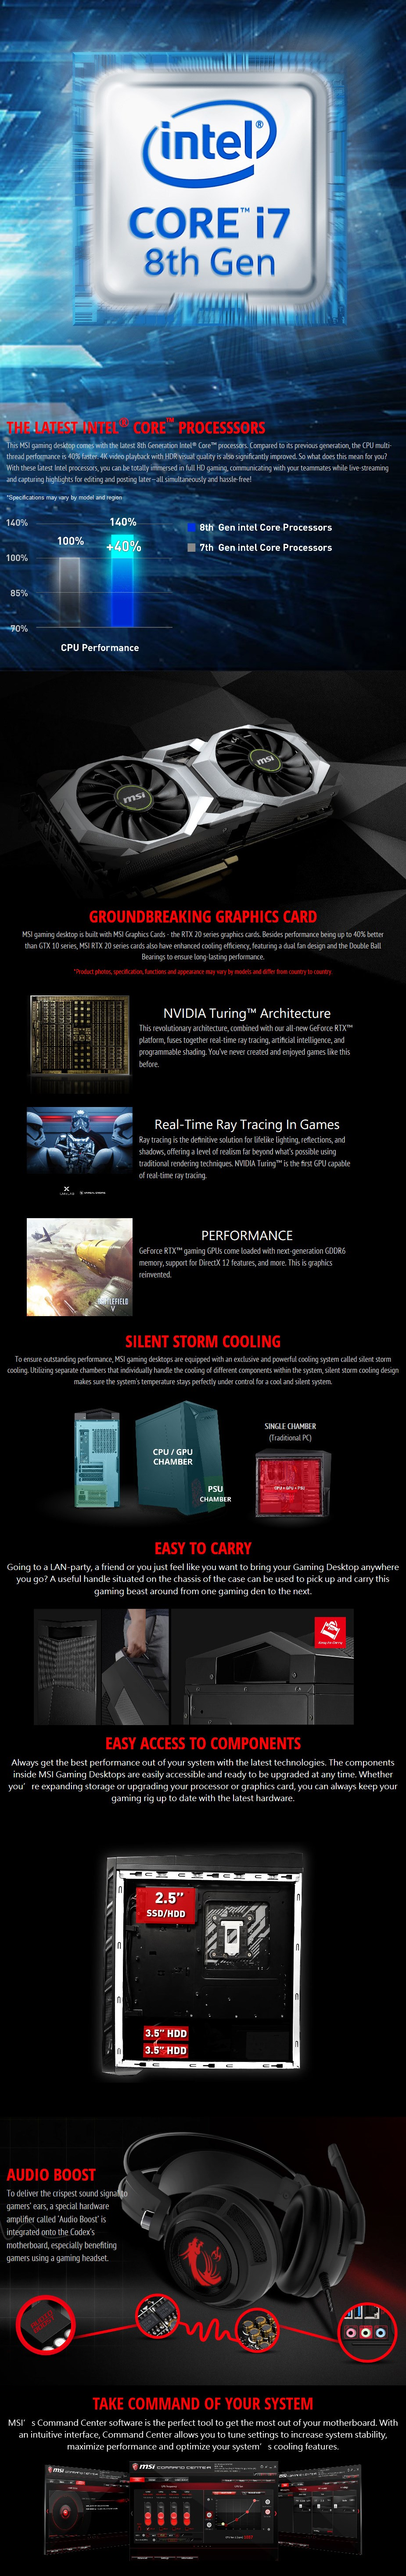 MSI Infinite Mid-Tower Gaming PC i7-8700 16GB 256GB RTX2060 Win10H - Desktop Overview 1